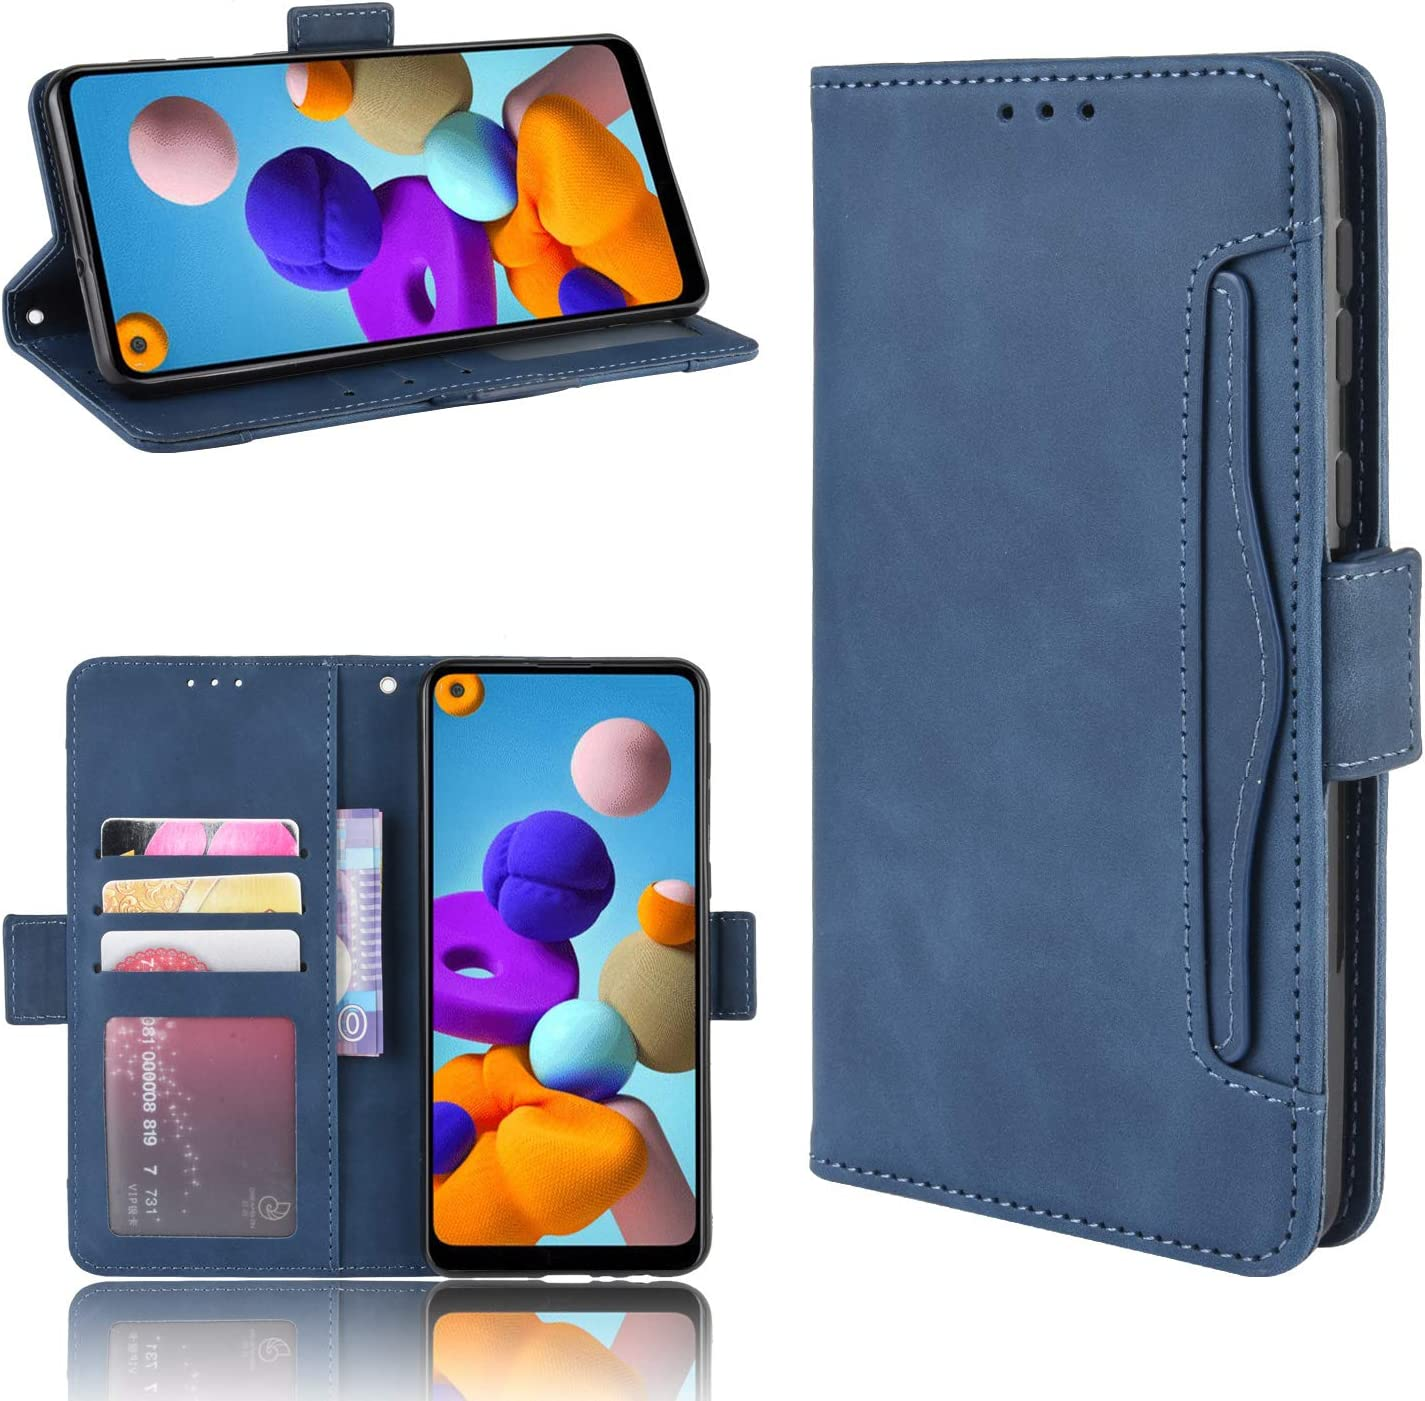 with Wrist Strap and PU Leather Wallet Case Flip Protective Phone Cover 4-Slots ID/&Credit Cards Pocket for Samsung Galaxy A21 2020 Stand Feature Black ERAGLOW for Galaxy A21 Case